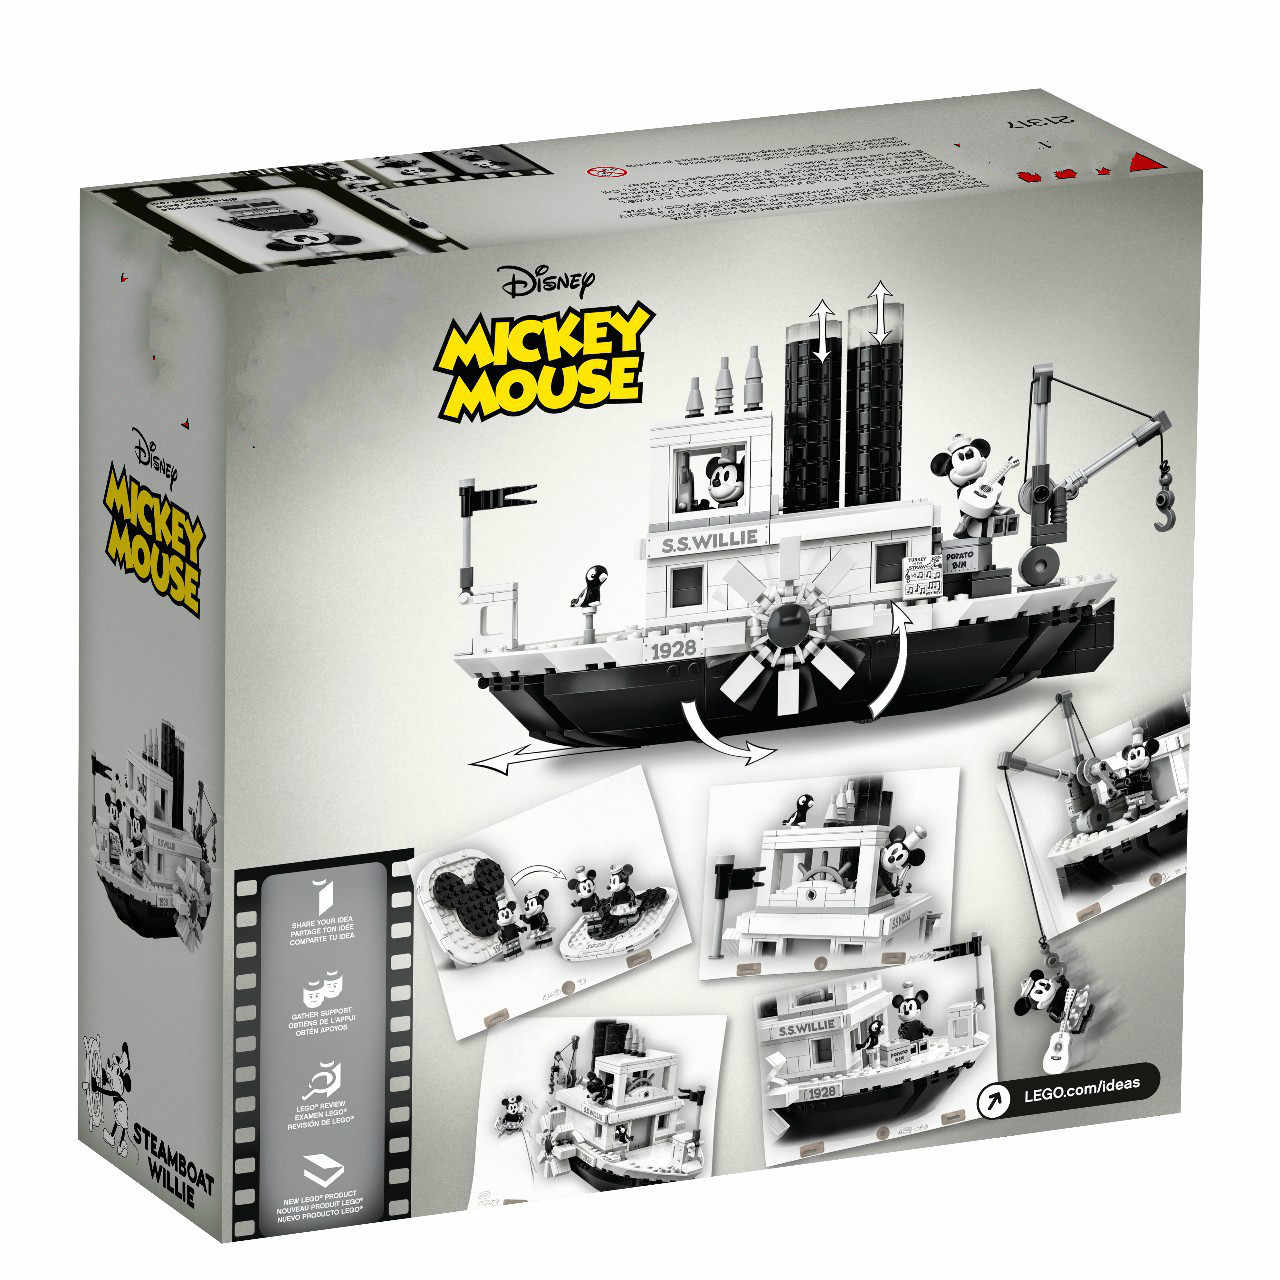 Ideas 2019 Movies Series Steamboat Willie Building Blocks Bricks Child DIY Toys Compatible with LegoGELI 21317  Toys for Girls